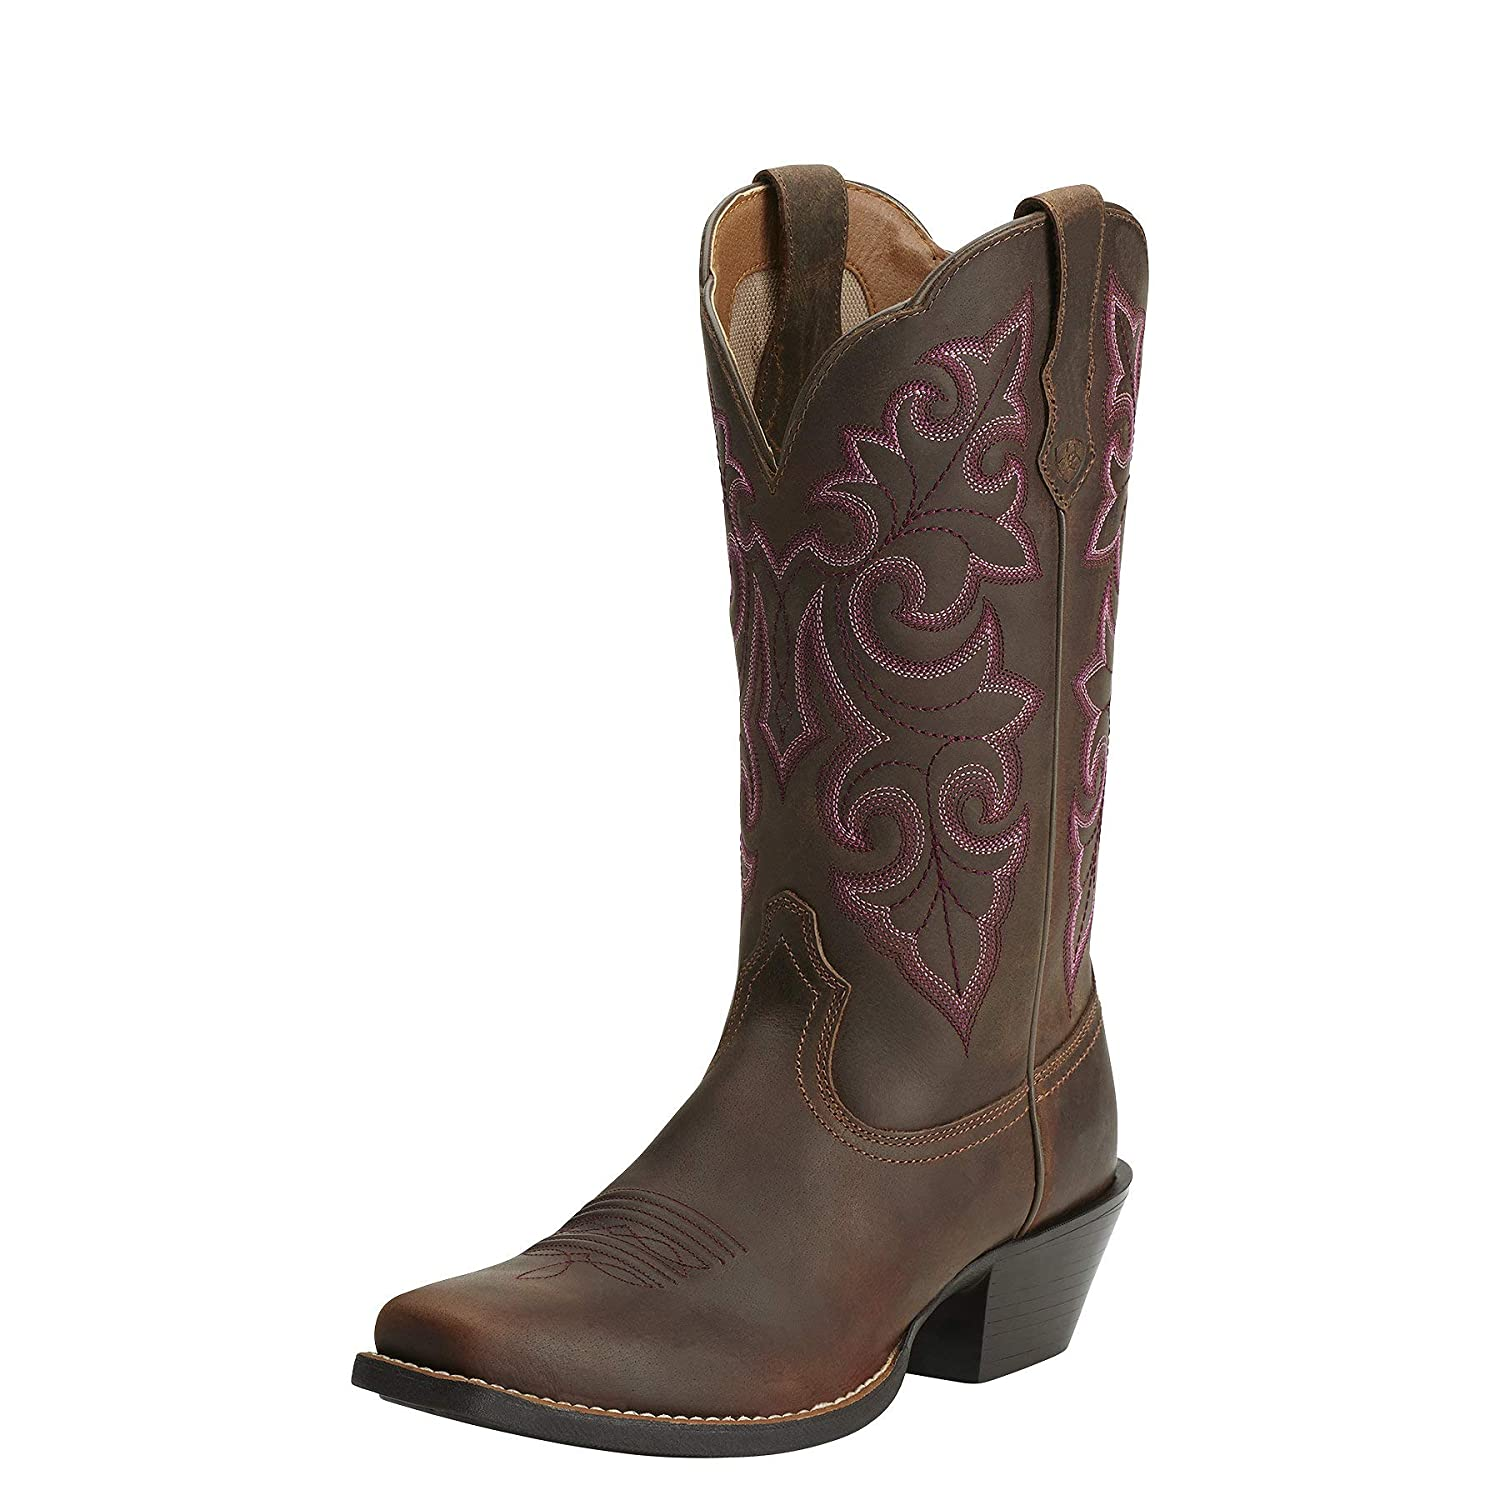 64c34977332 Ariat Women's Round Up Square Toe Western Cowboy Boot